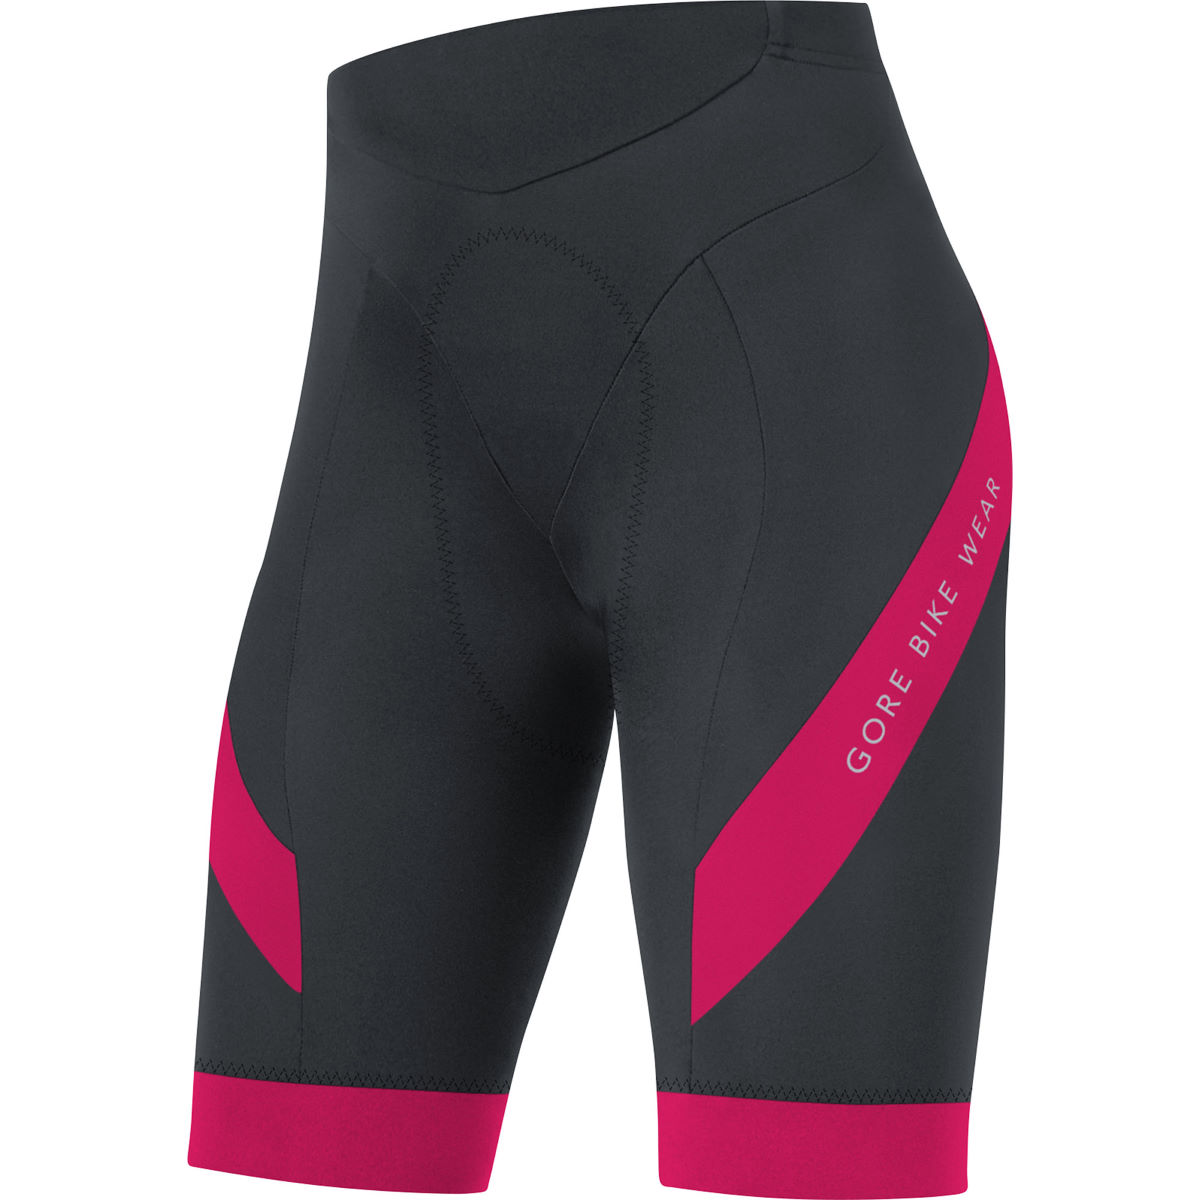 Cuissard court Femme Gore Bike Wear Power+ - L Noir/Rose Cuissards en lycra